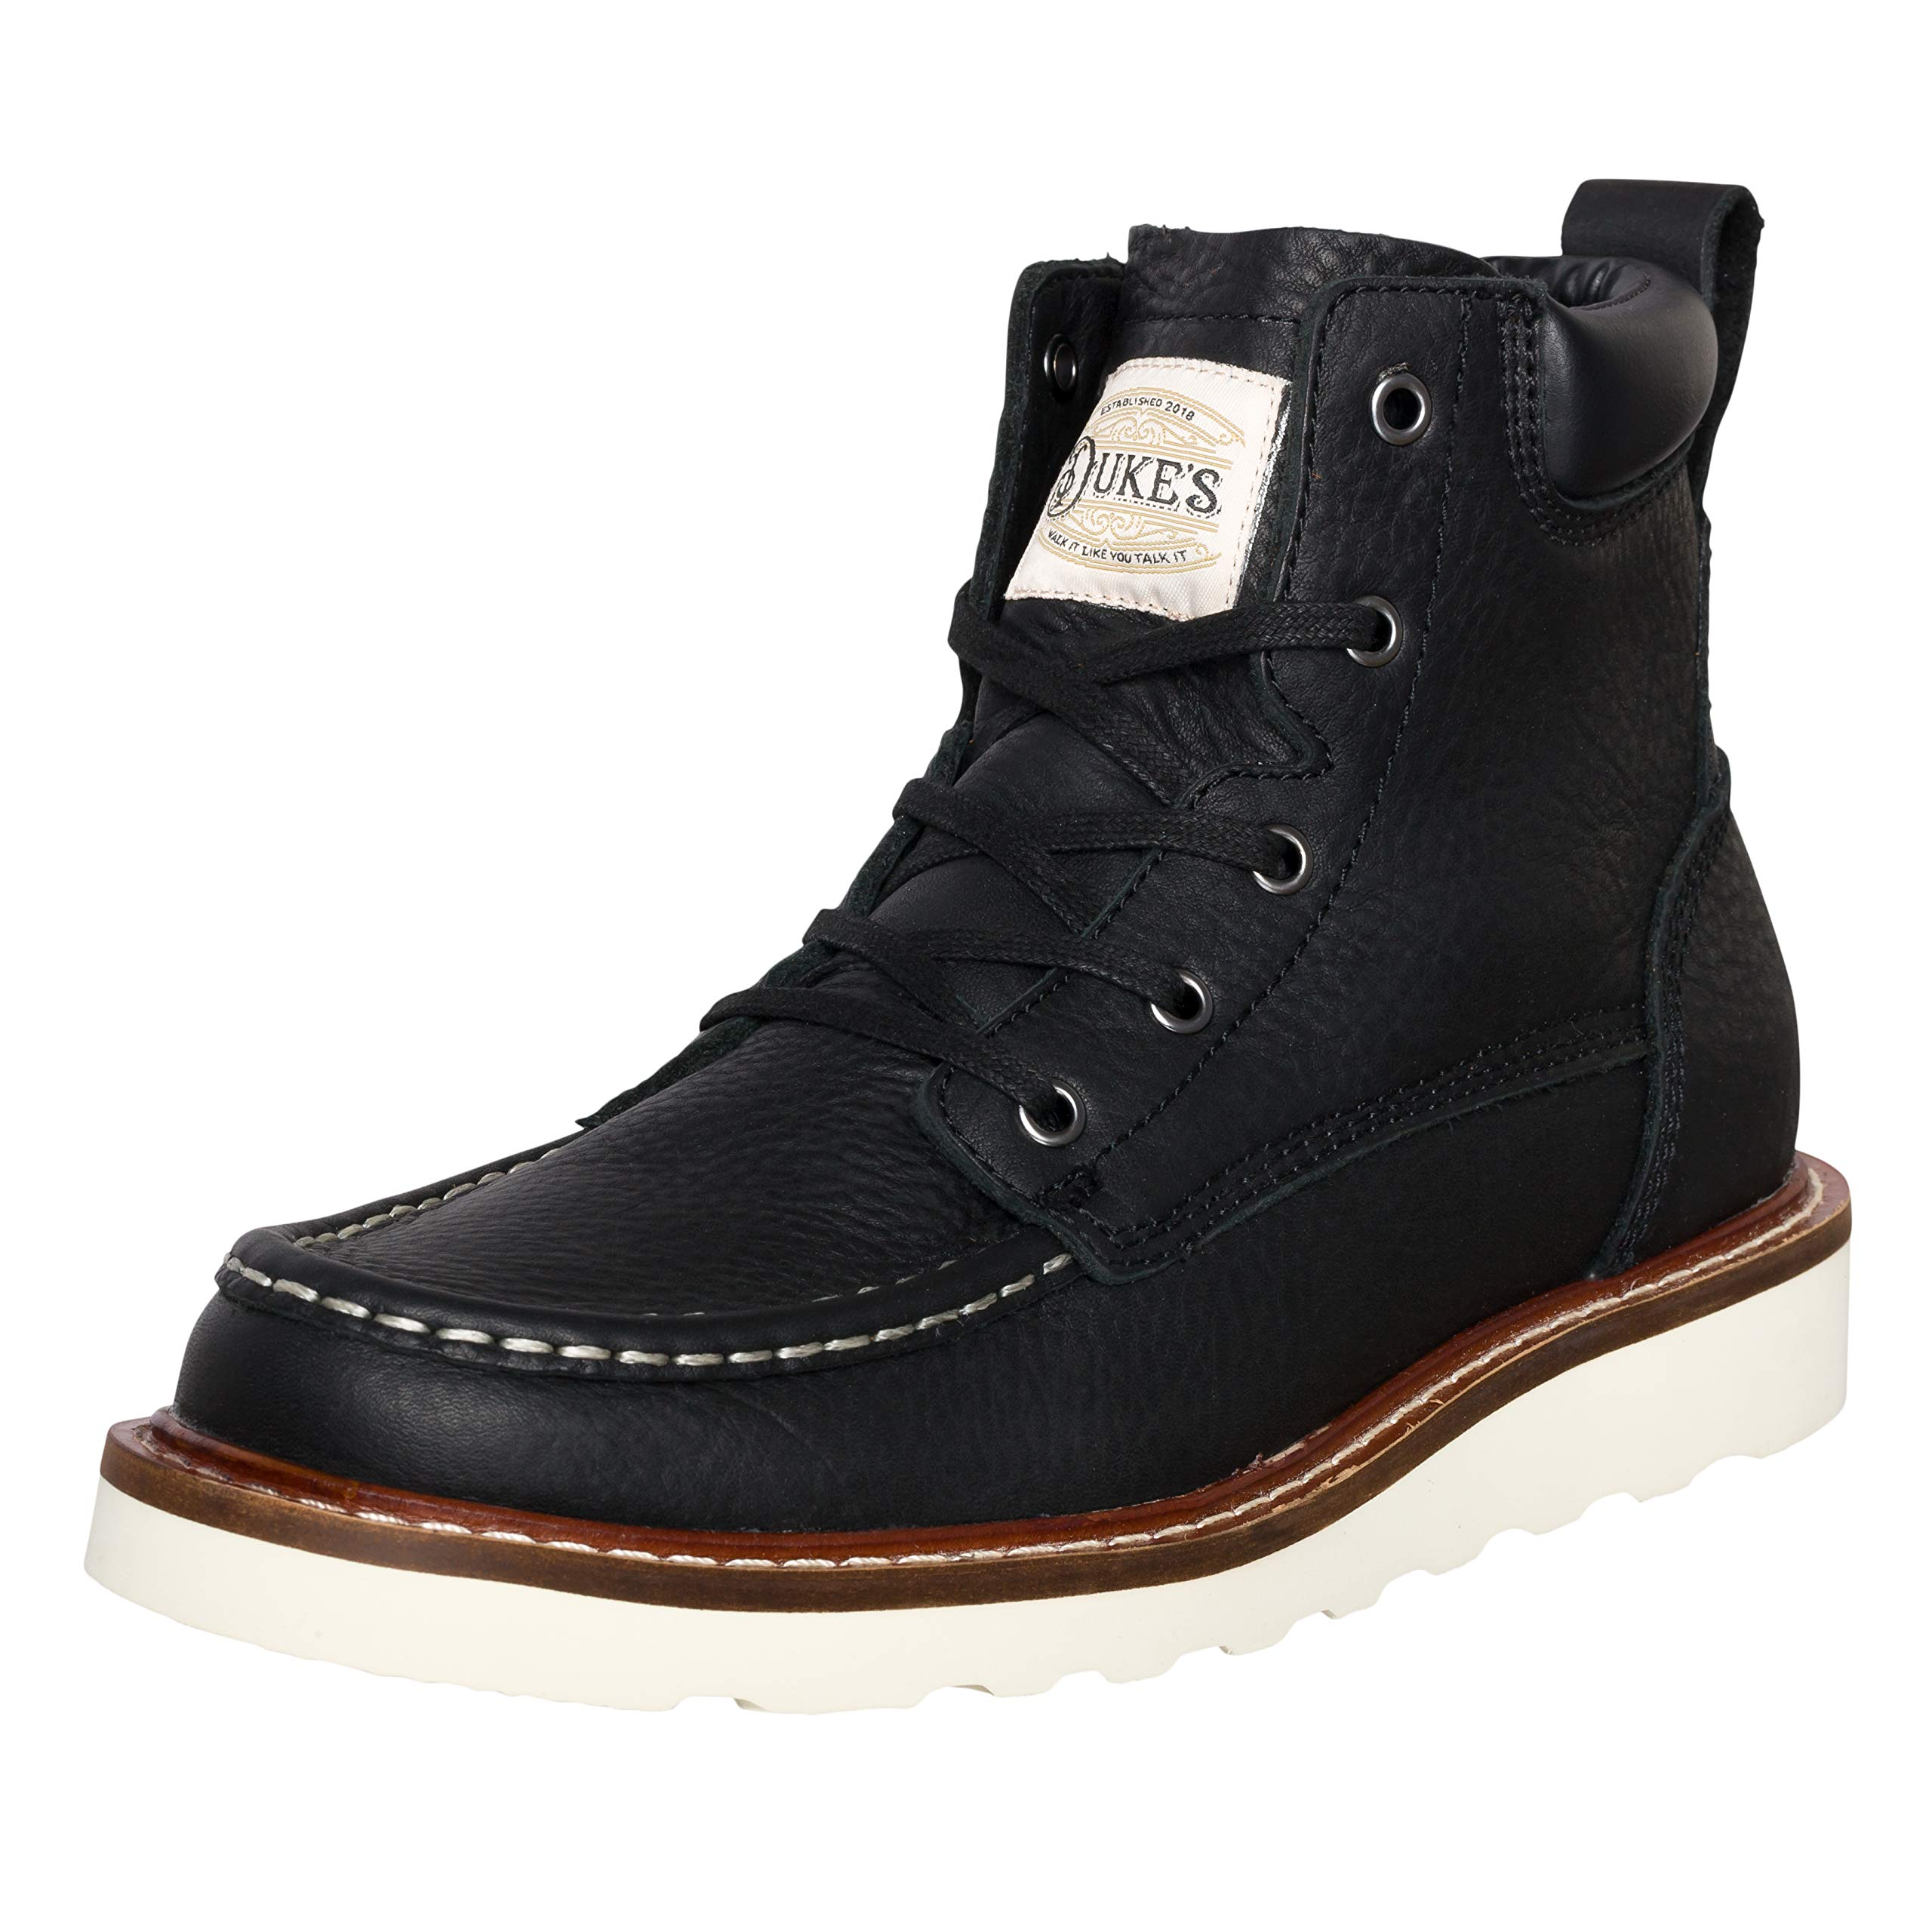 Duke's Mens Boots - Portland Leather Work Boot with Premium Cushion Insole (Black) by Duke's